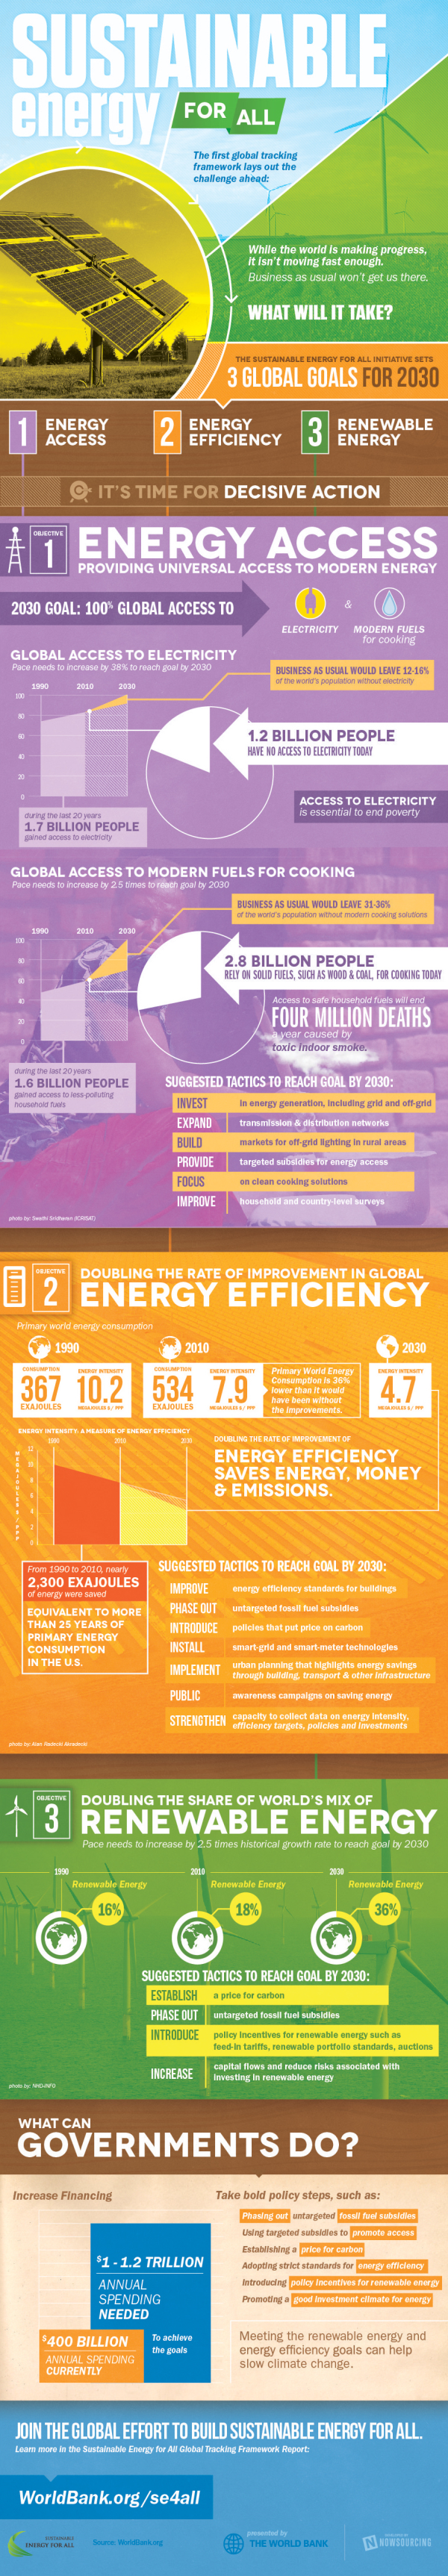 Sustainable Energy Infographic